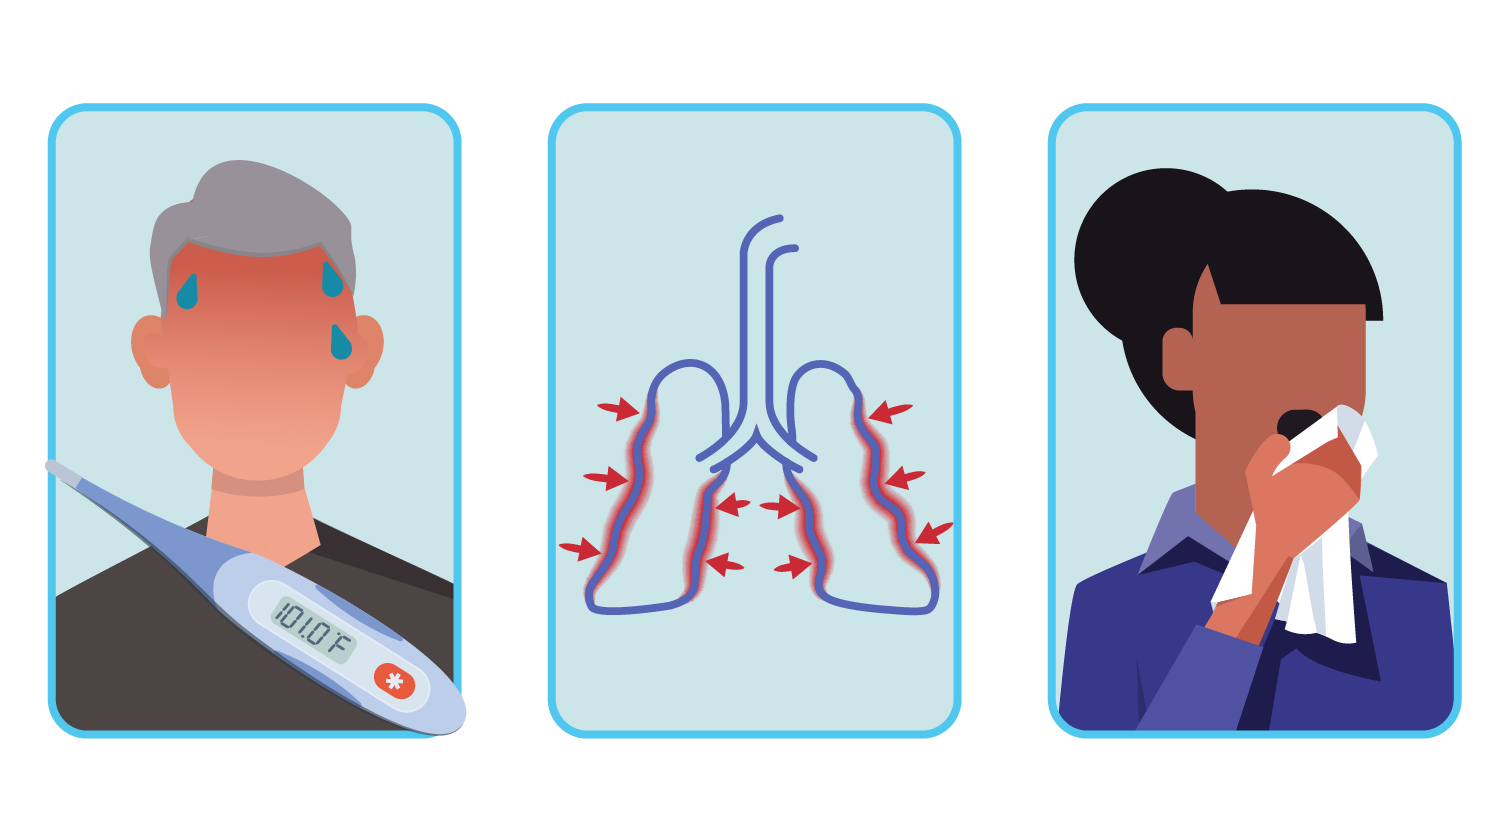 Person perspiring and thermometer indicating person has a fever, diagram of lungs, and person coughing